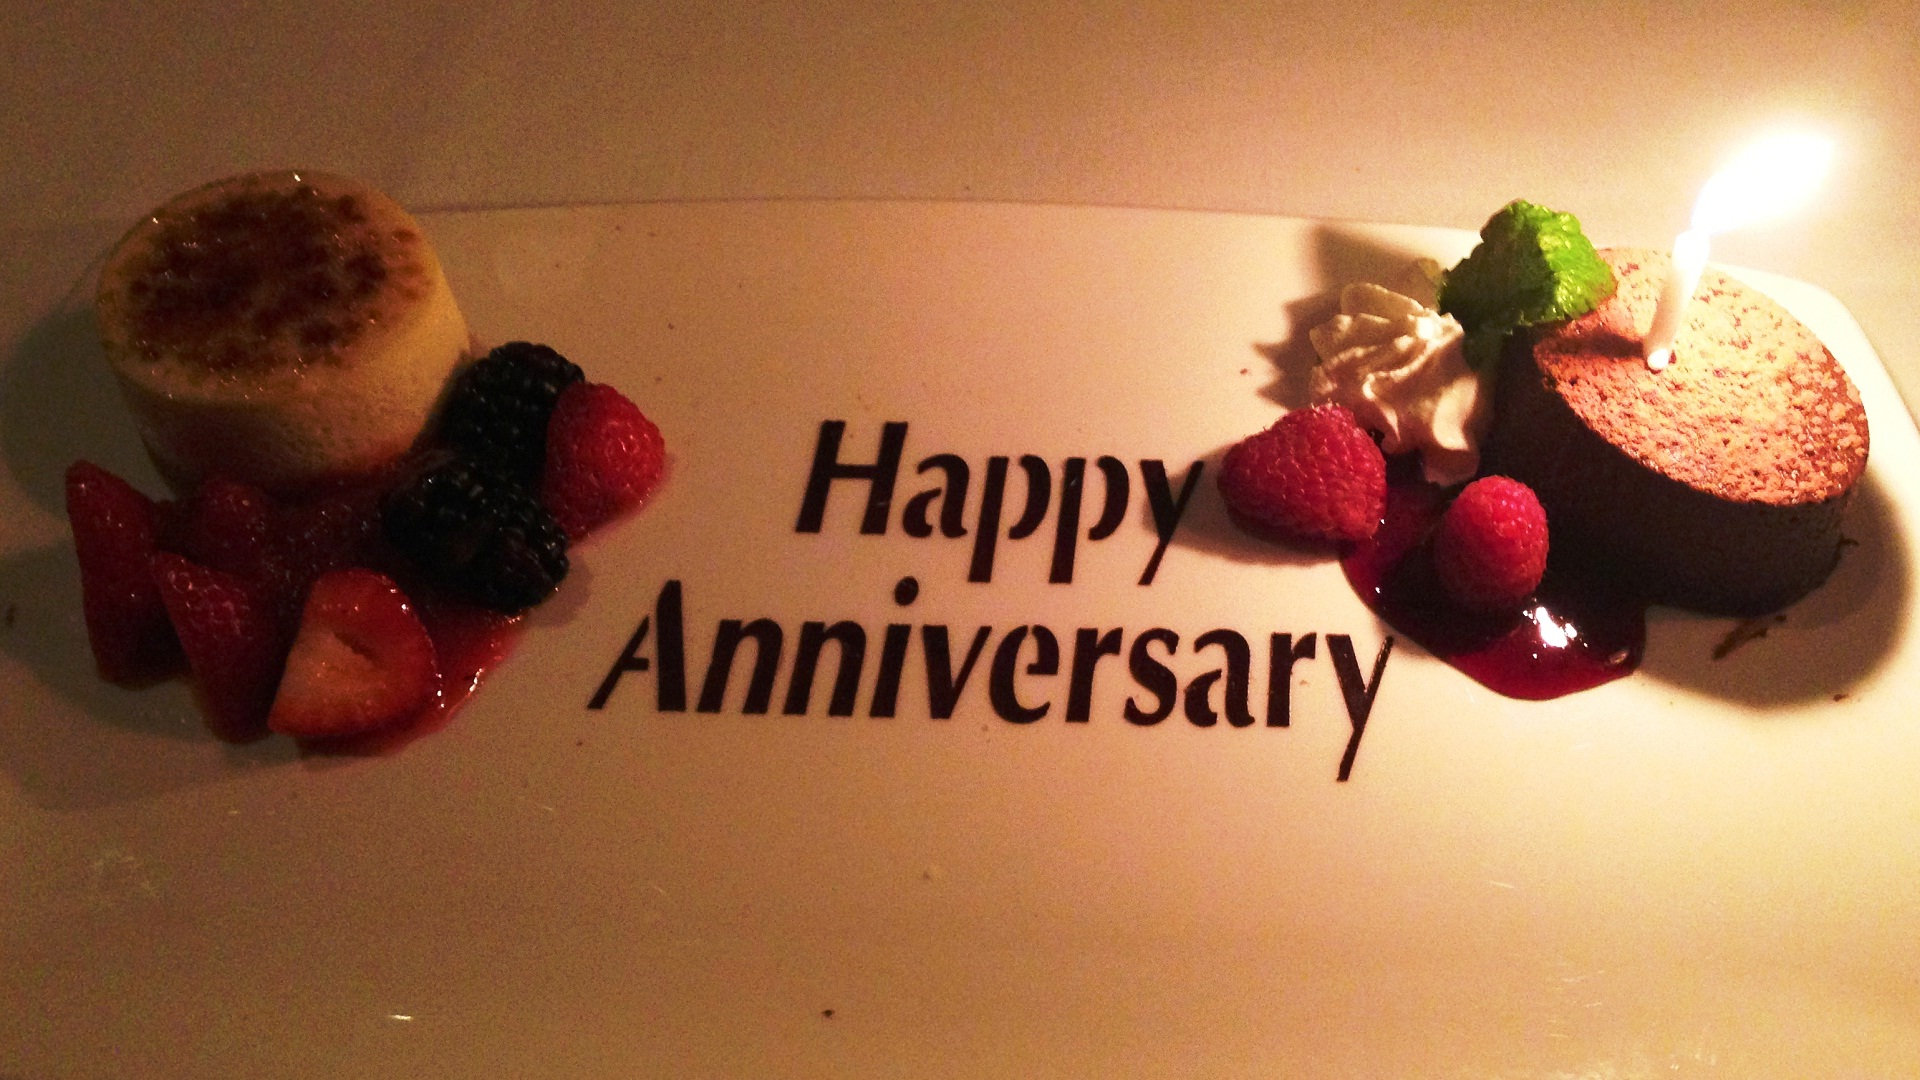 Free Download Happy Marriage Anniversary Cake Wallpapers New Hd 1920x1080 For Your Desktop Mobile Tablet Explore 78 Happy Anniversary Wallpaper Christian Happy Anniversary Wallpaper Images Wedding Anniversary Wallpaper